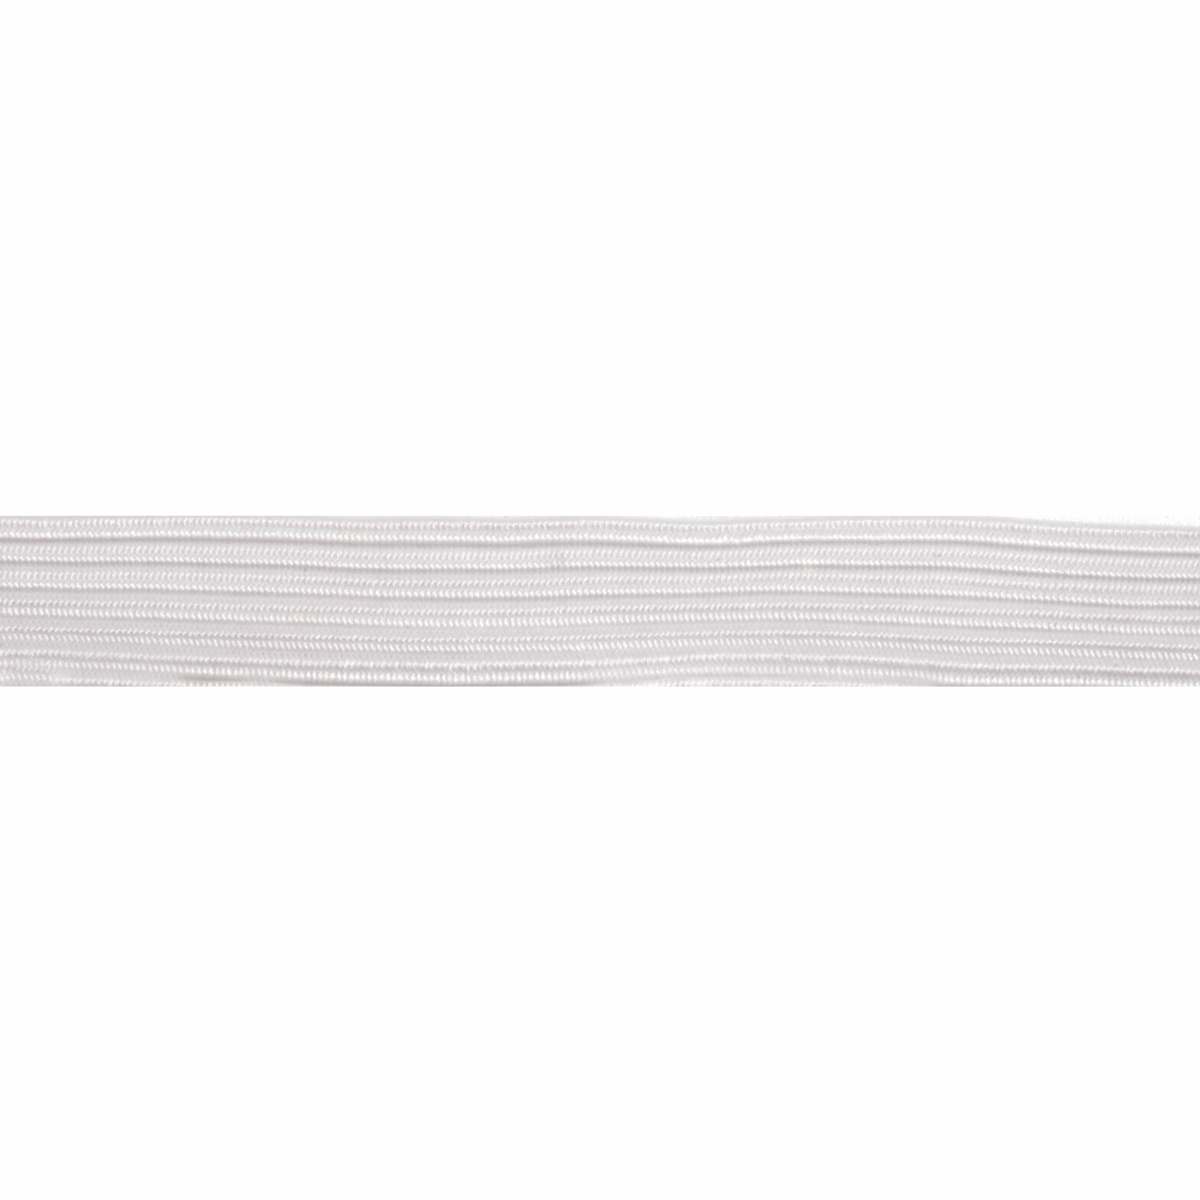 Picture of Braided Elastic 300m x 3mm: White